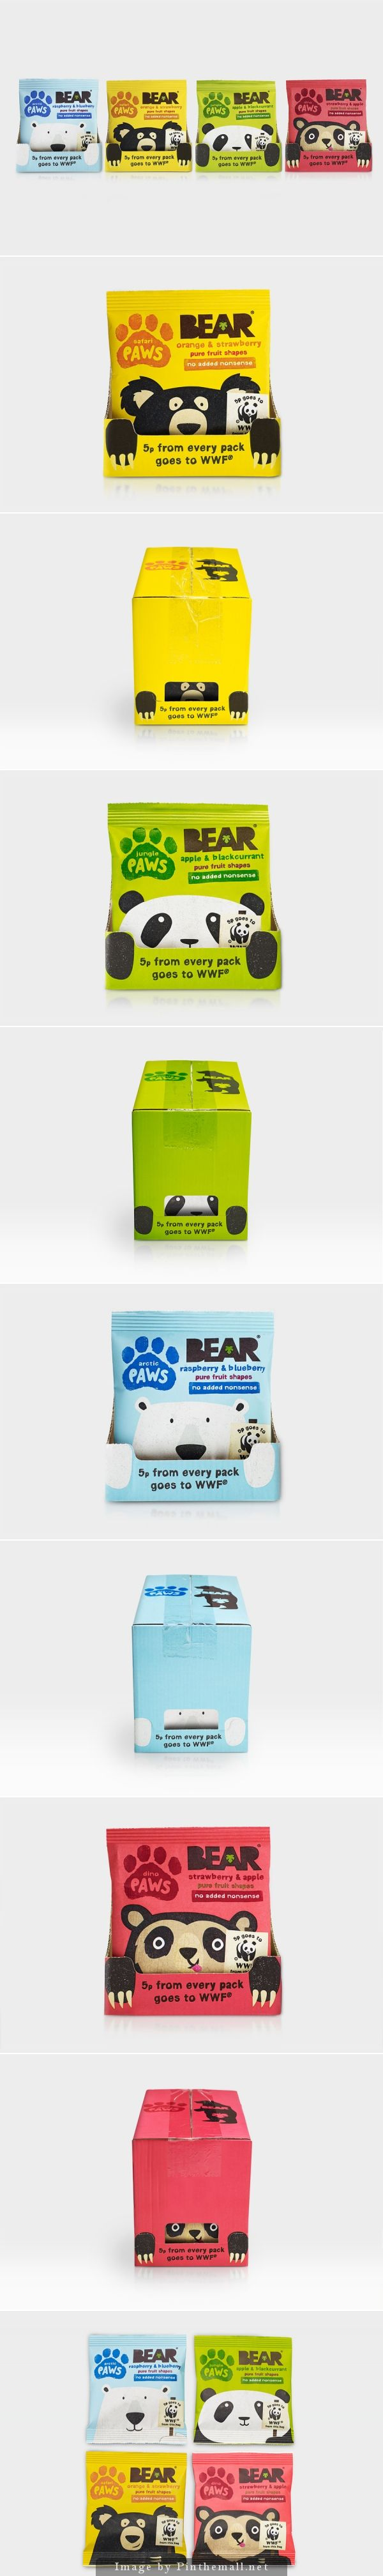 Bear Paws up close and cuddly packaging and for a good cause too curated by Packaging Diva PD